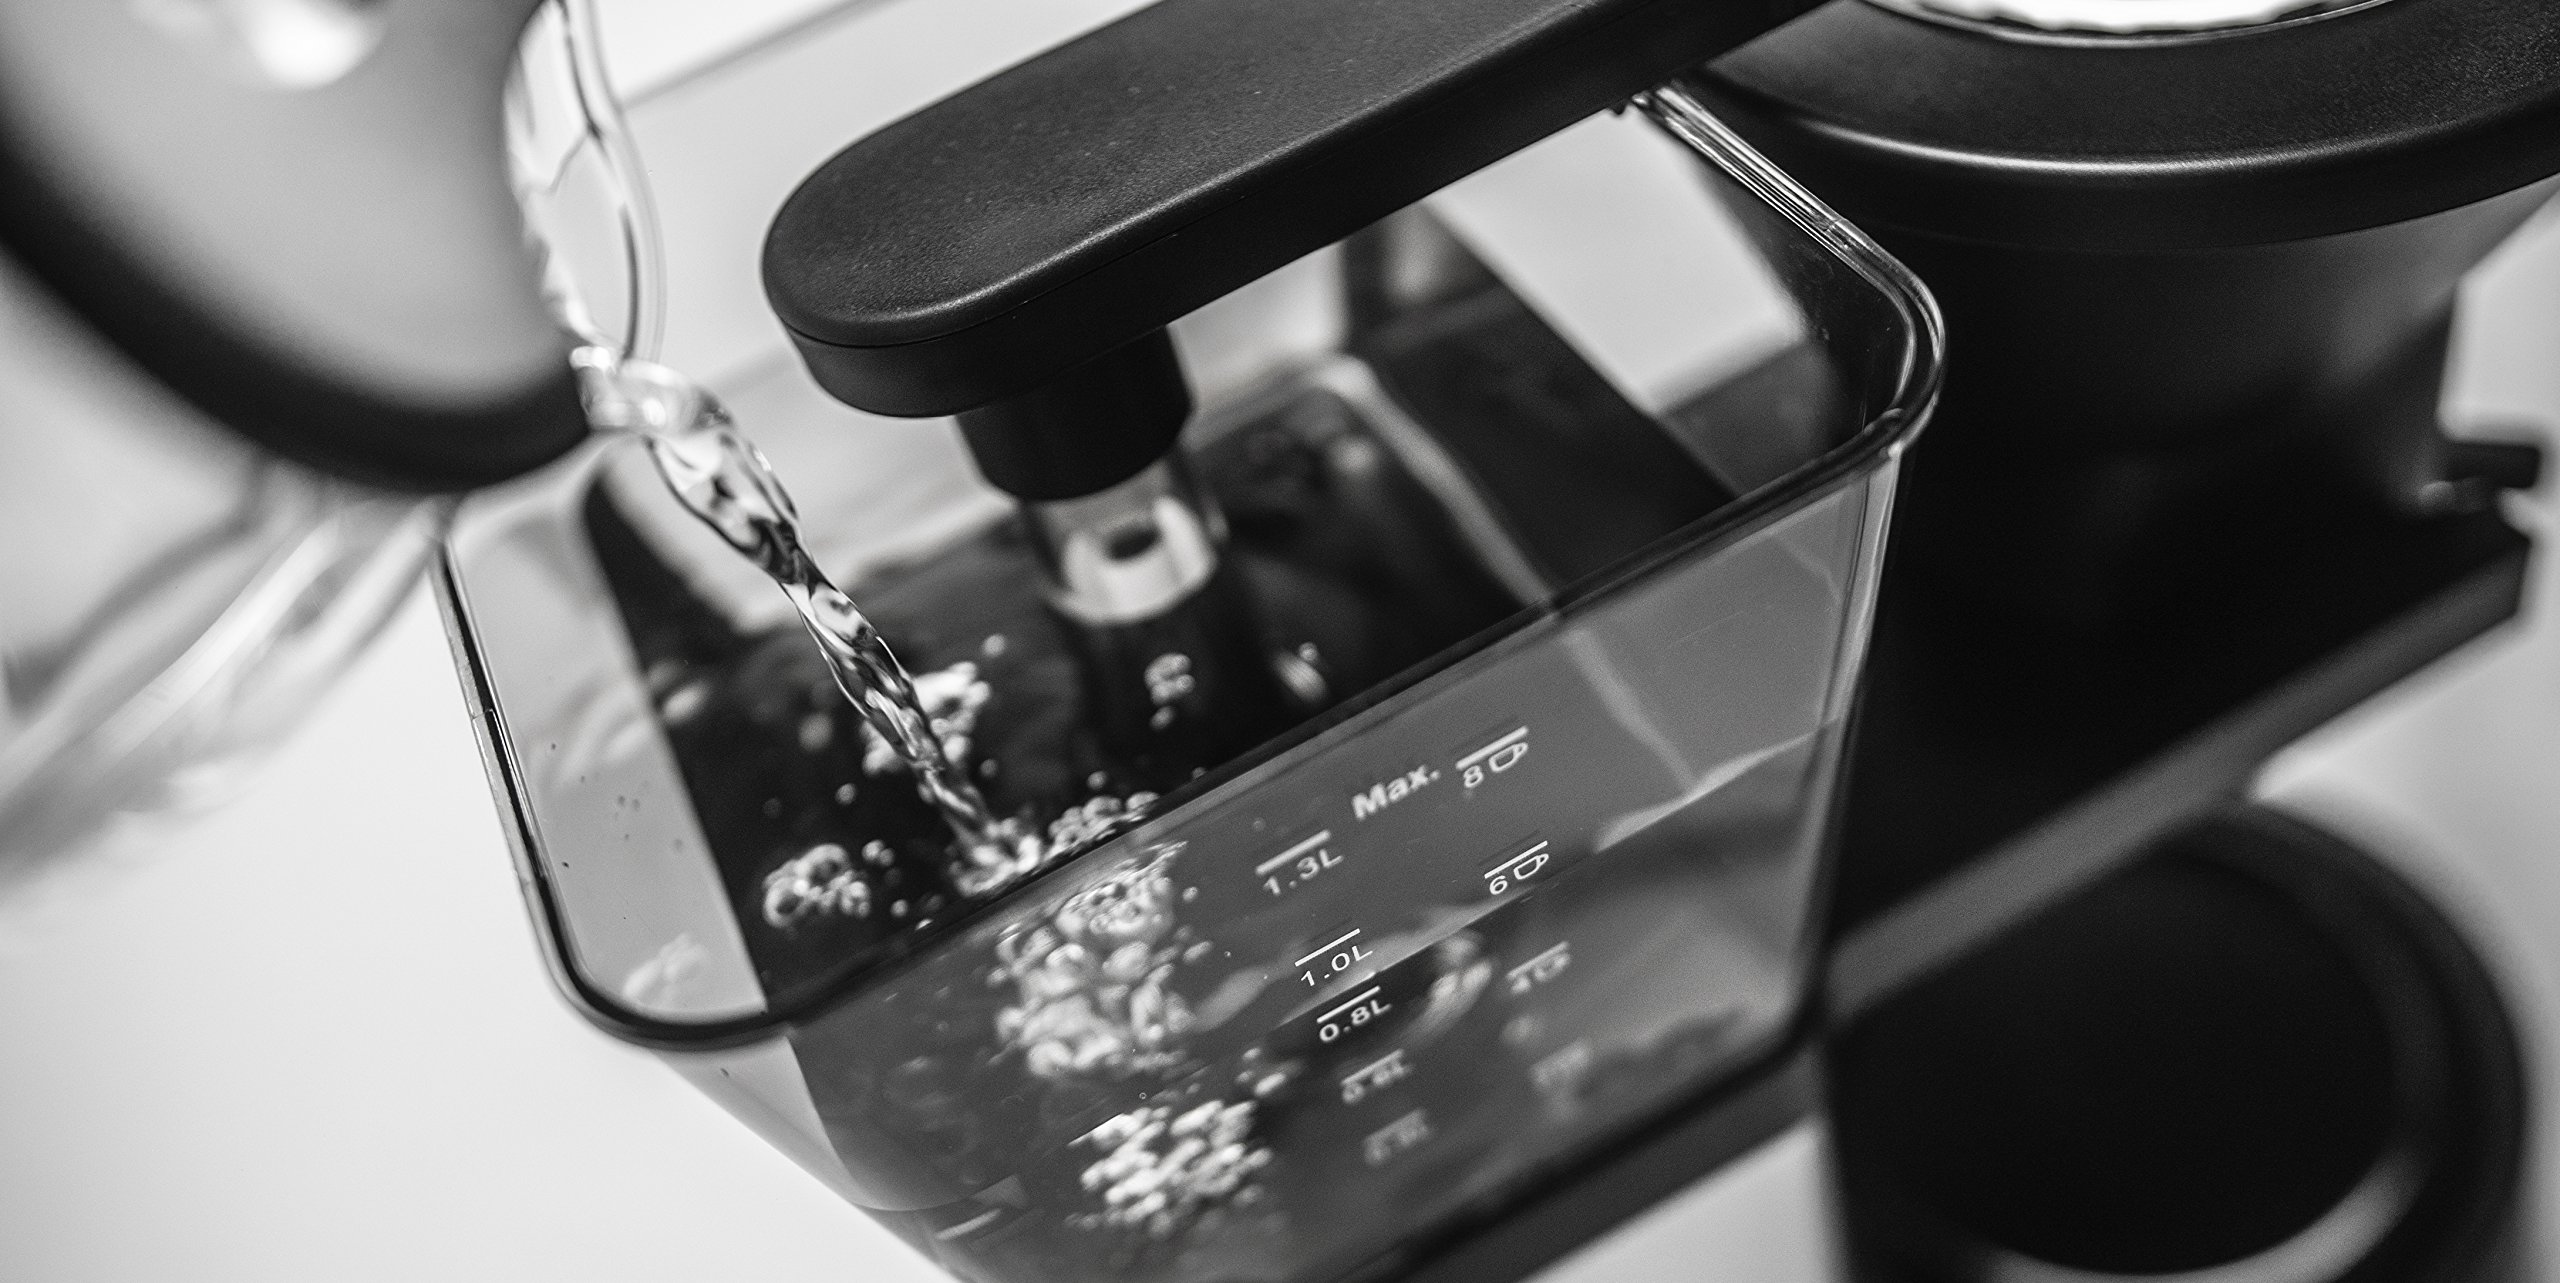 Redline MK1 8 Cup Coffee Brewer with Glass Carafe, Hot Plate and Pre-Infusion Mode by Redline Coffee (Image #6)